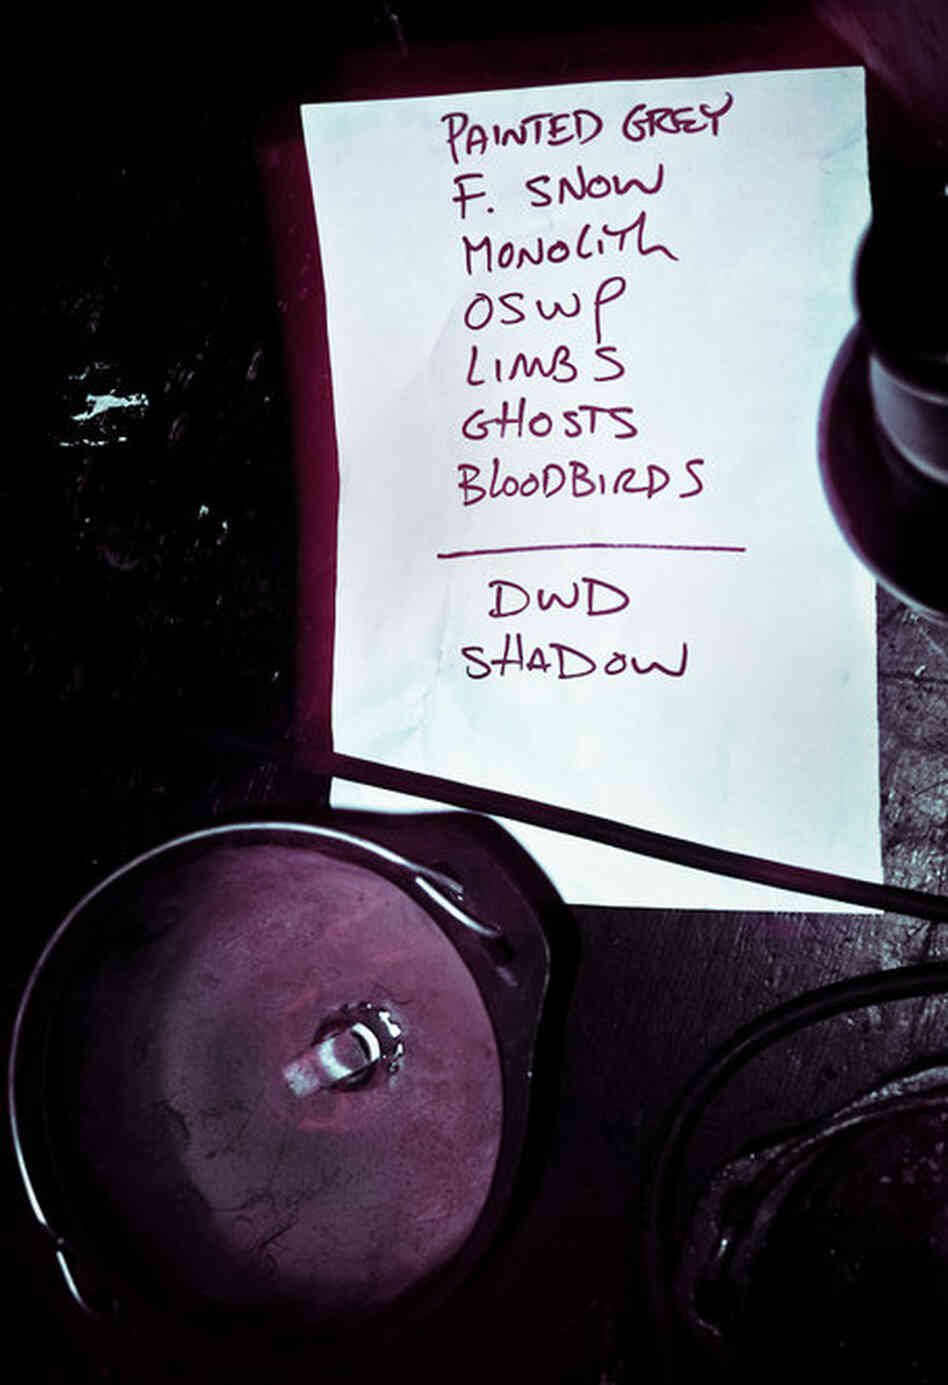 Agalloch's set list.